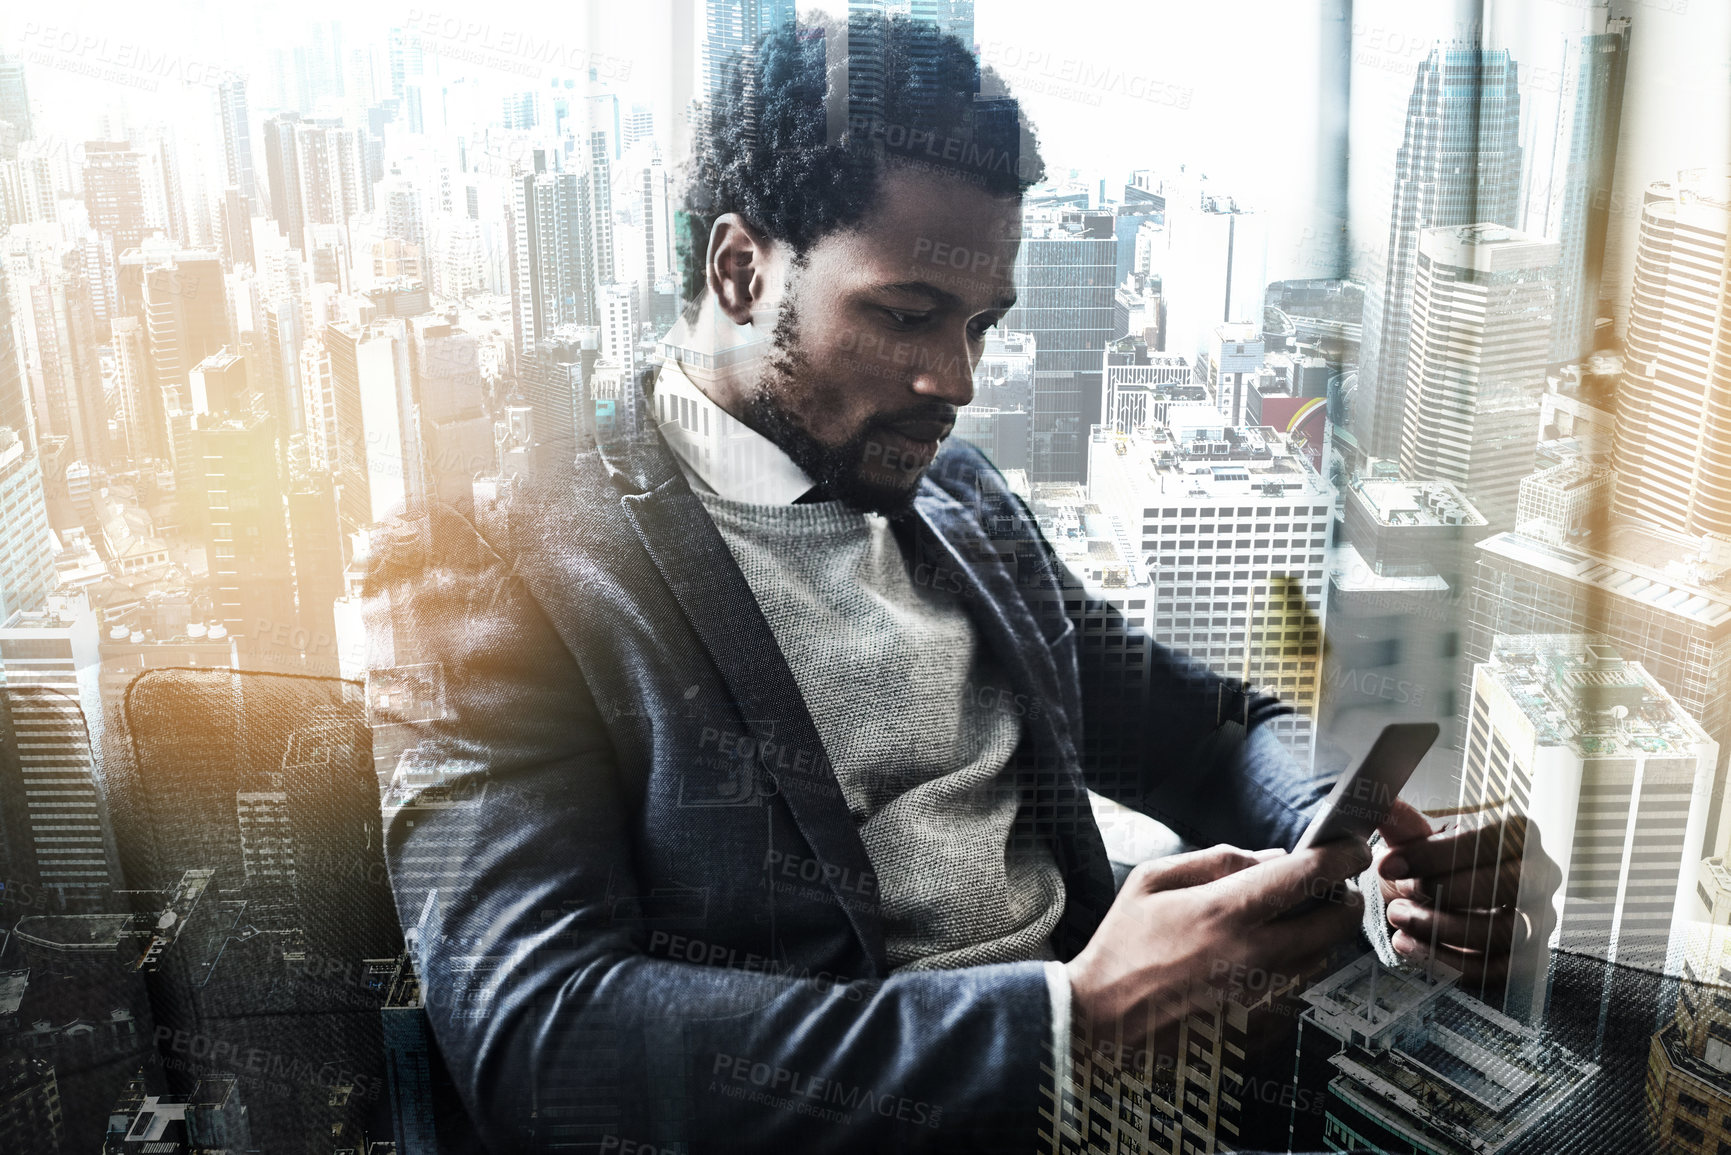 Buy stock photo Shot of a young businessman using a smartphone superimposed on a city background